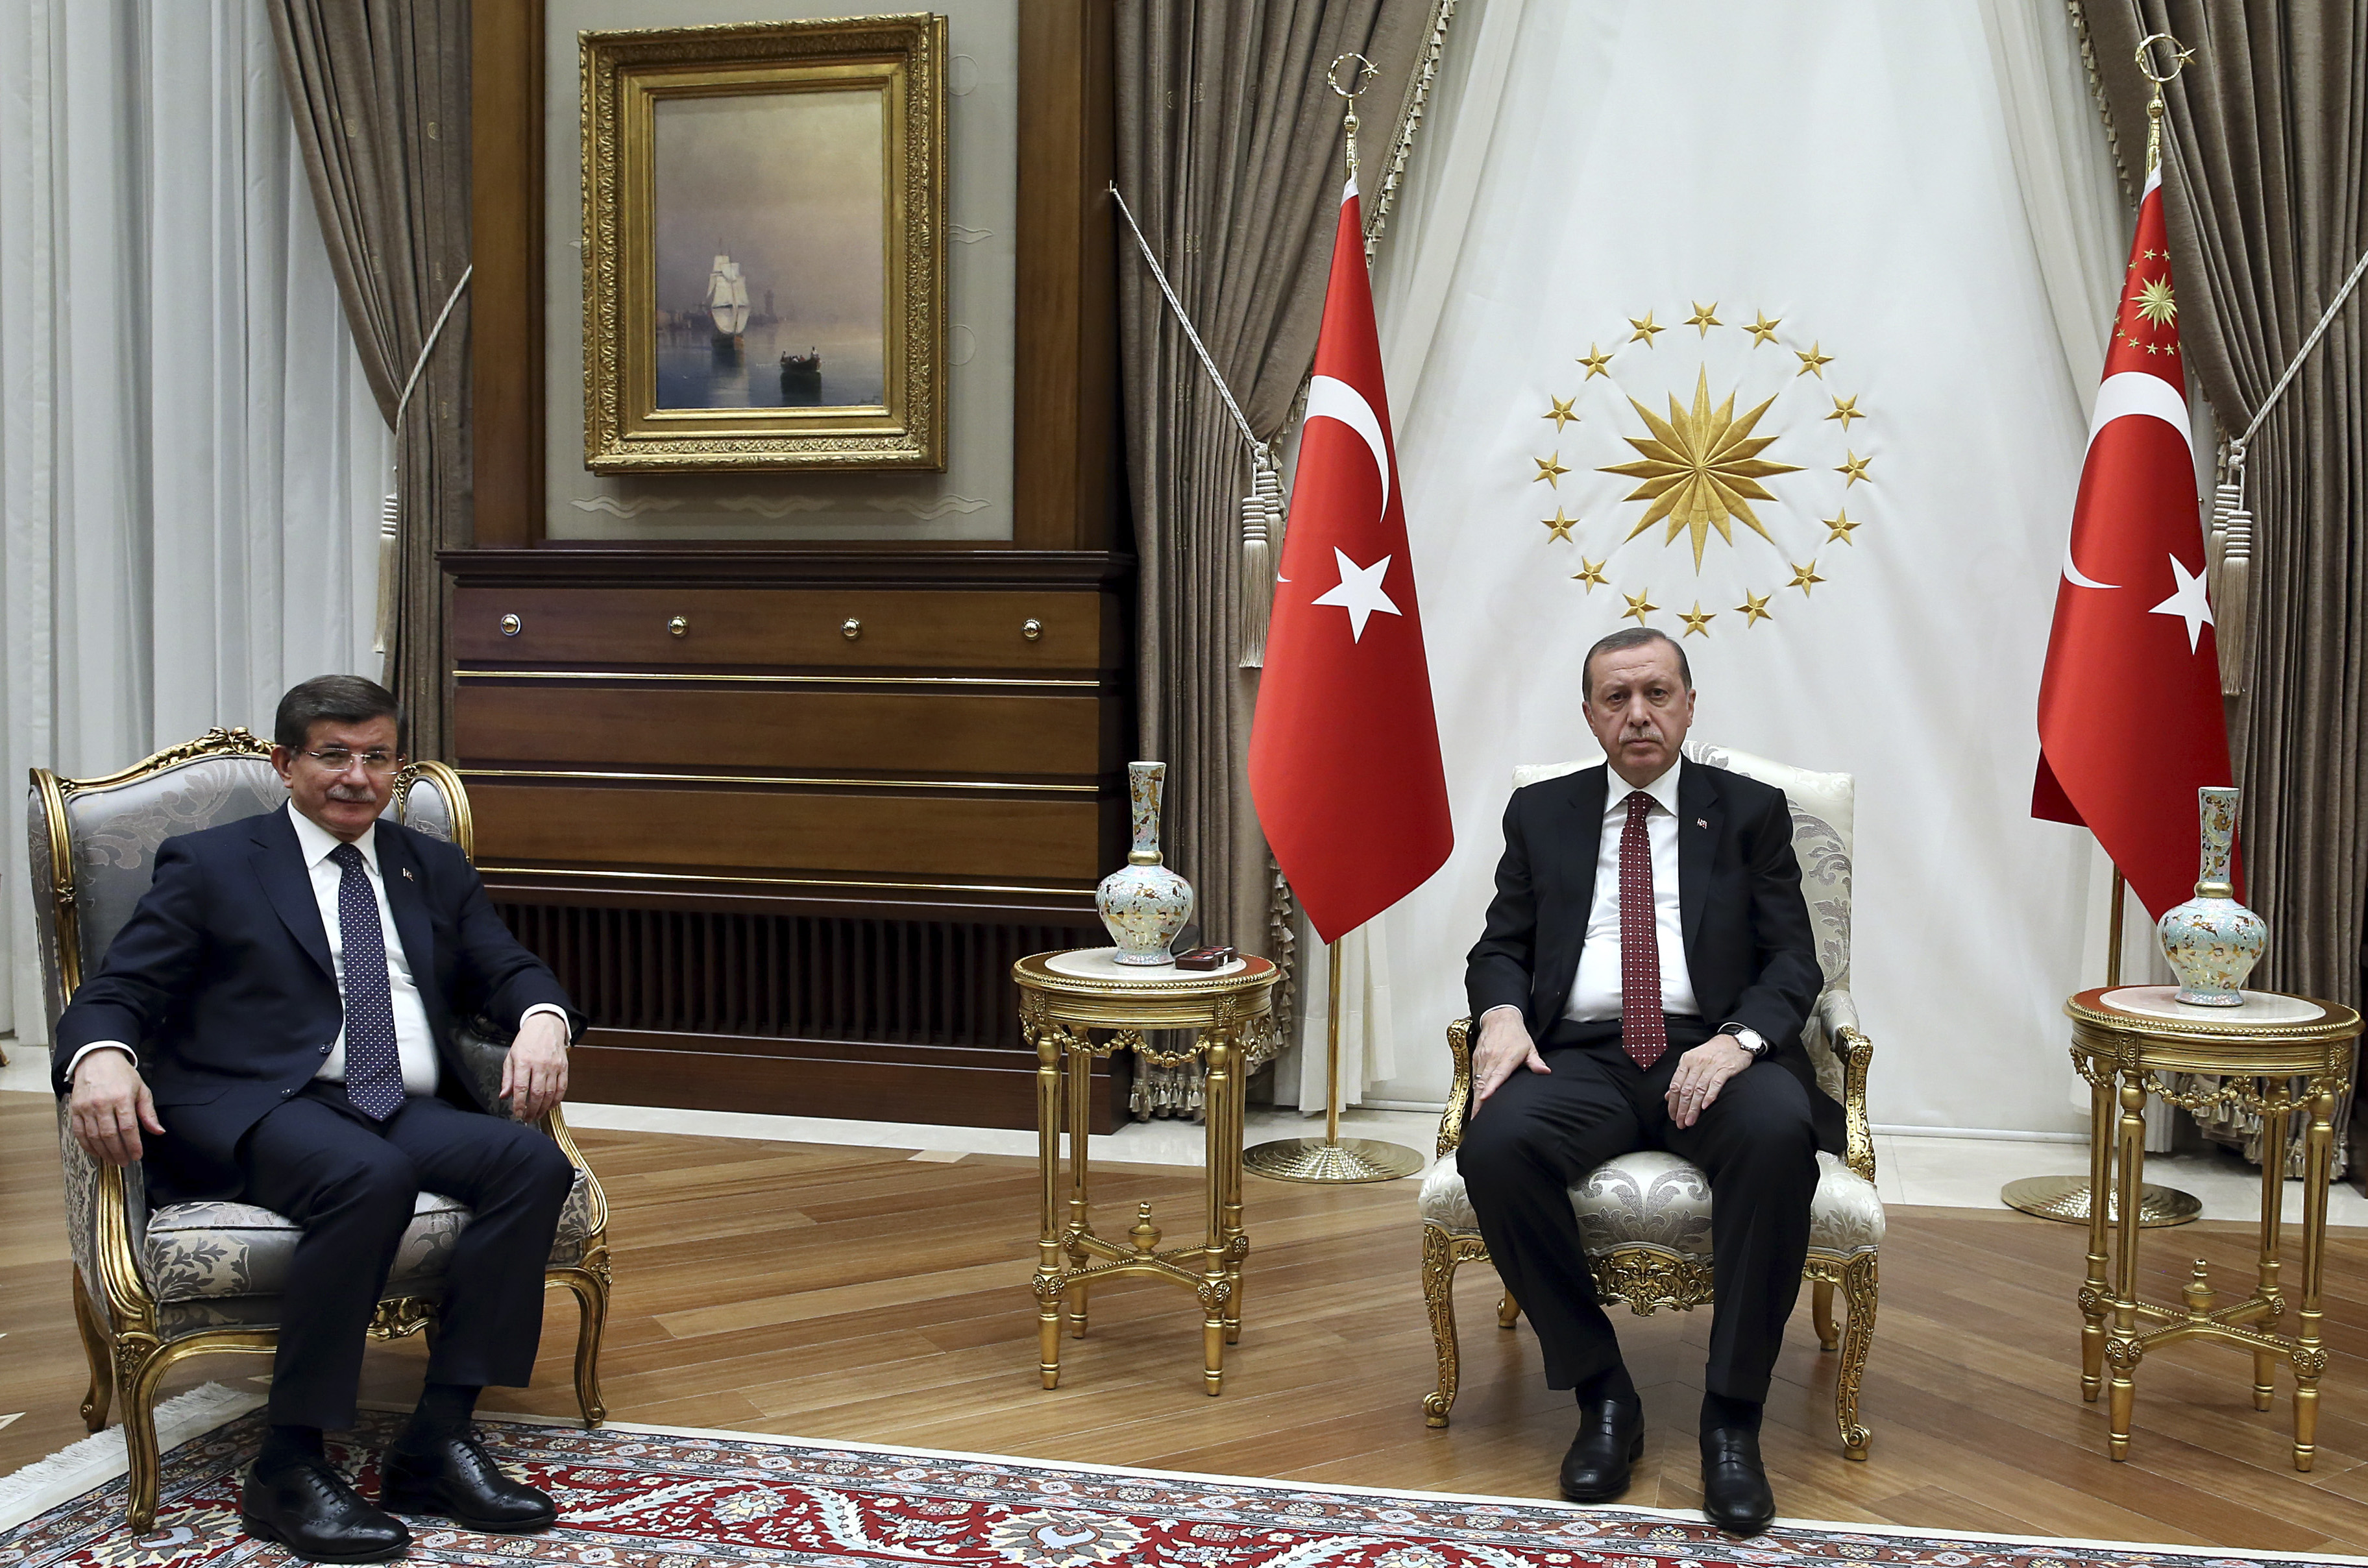 Turkey's President Recep Tayyip Erdogan, right, meets with Turkey's Prime Minister Ahmet Davutoglu, left, in Ankara, Turkey, to discuss Sunday's explosion in the capital, Monday, March 14, 2016